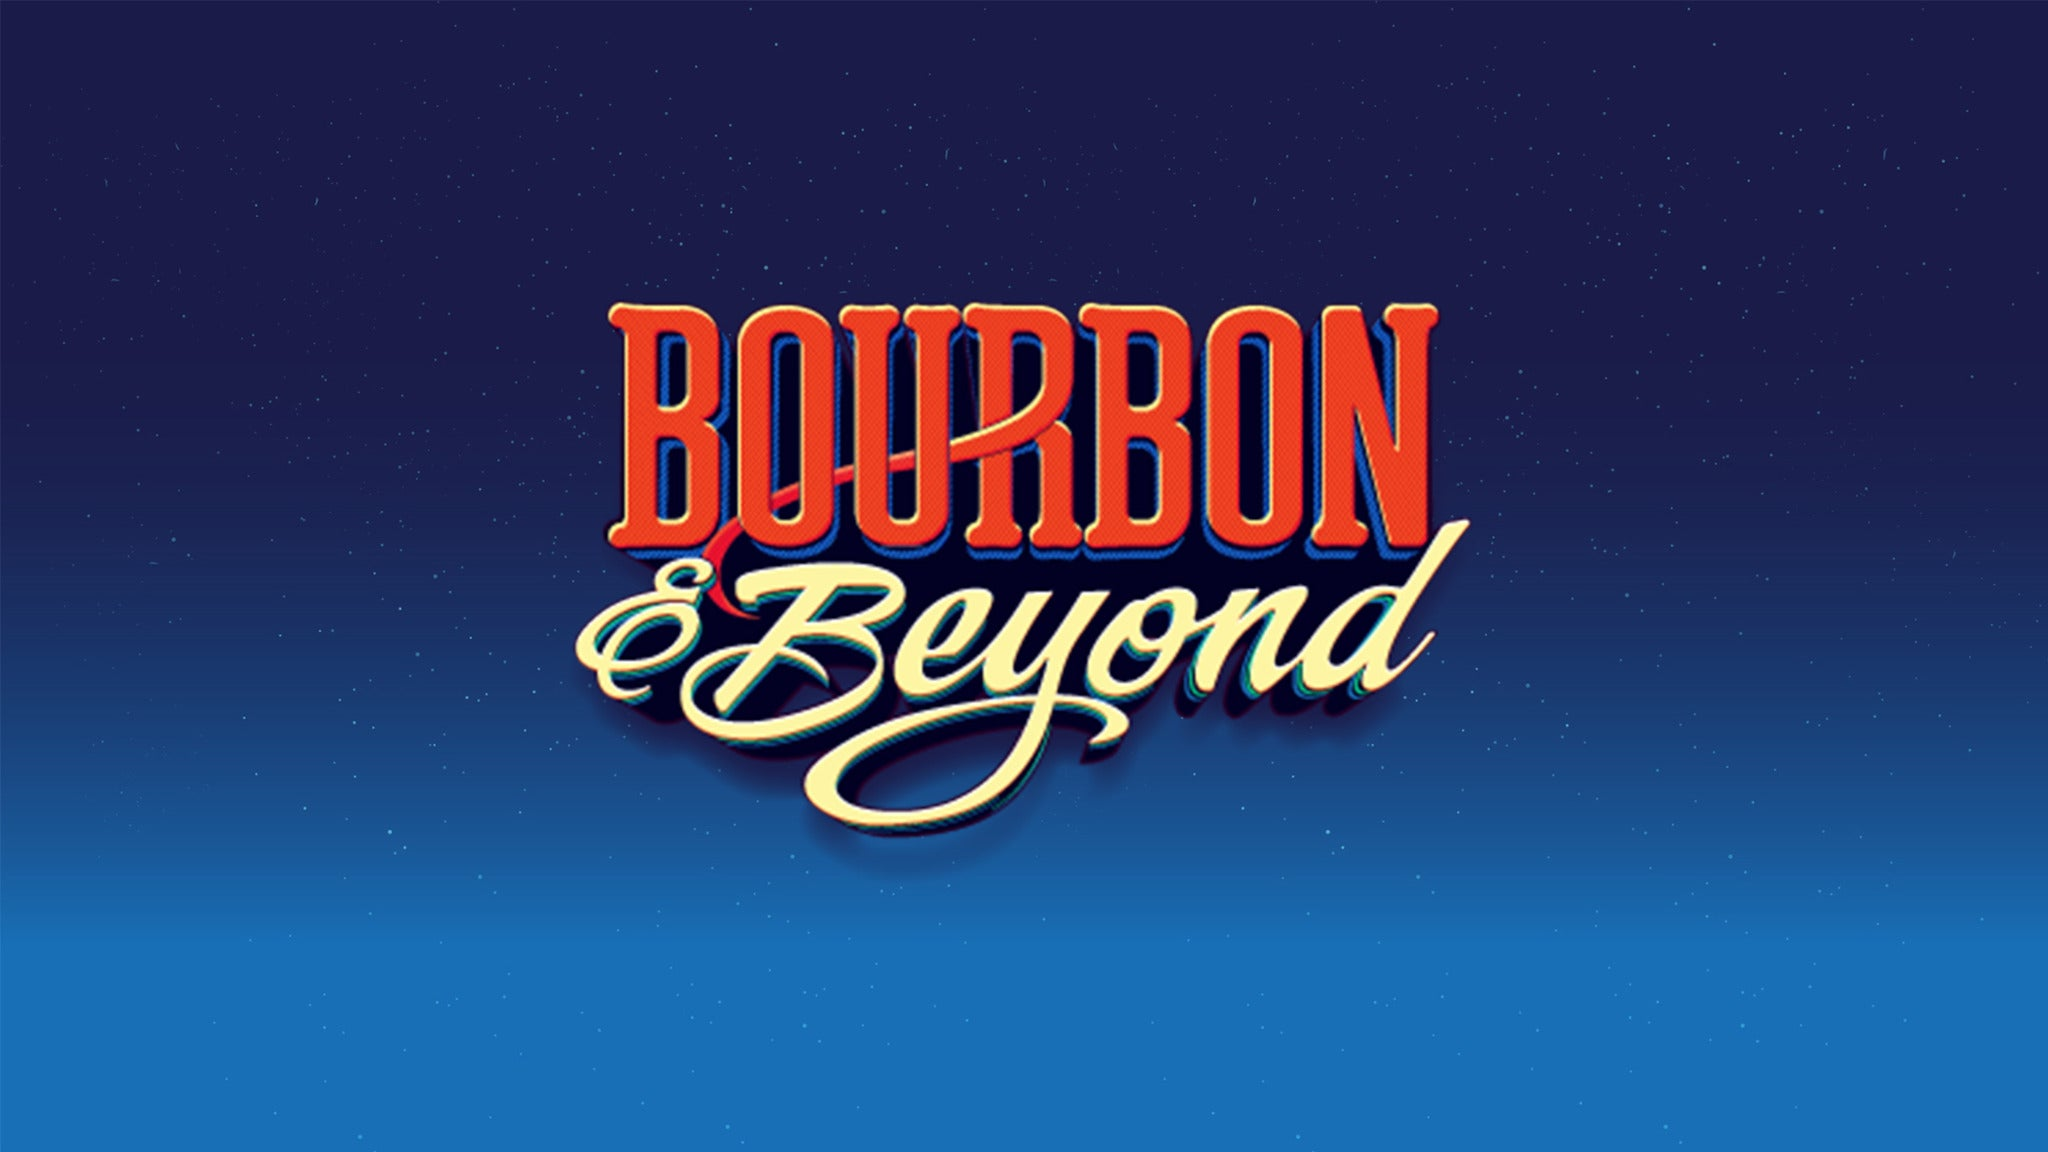 Bourbon & Beyond Festival at Champions Park